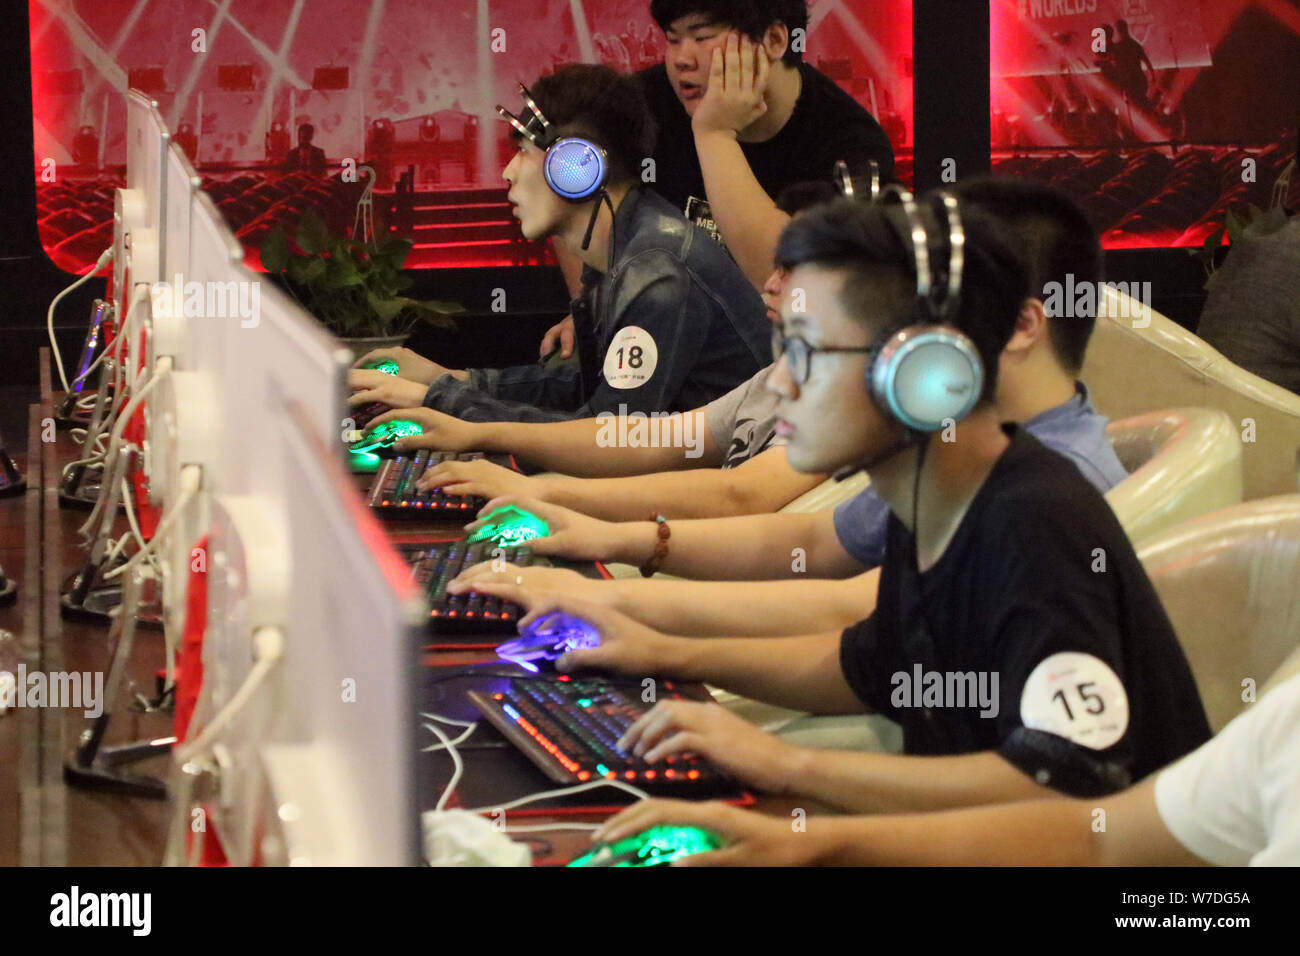 China Bans Online Gaming With Foreigners, Because Free Speech Hurts